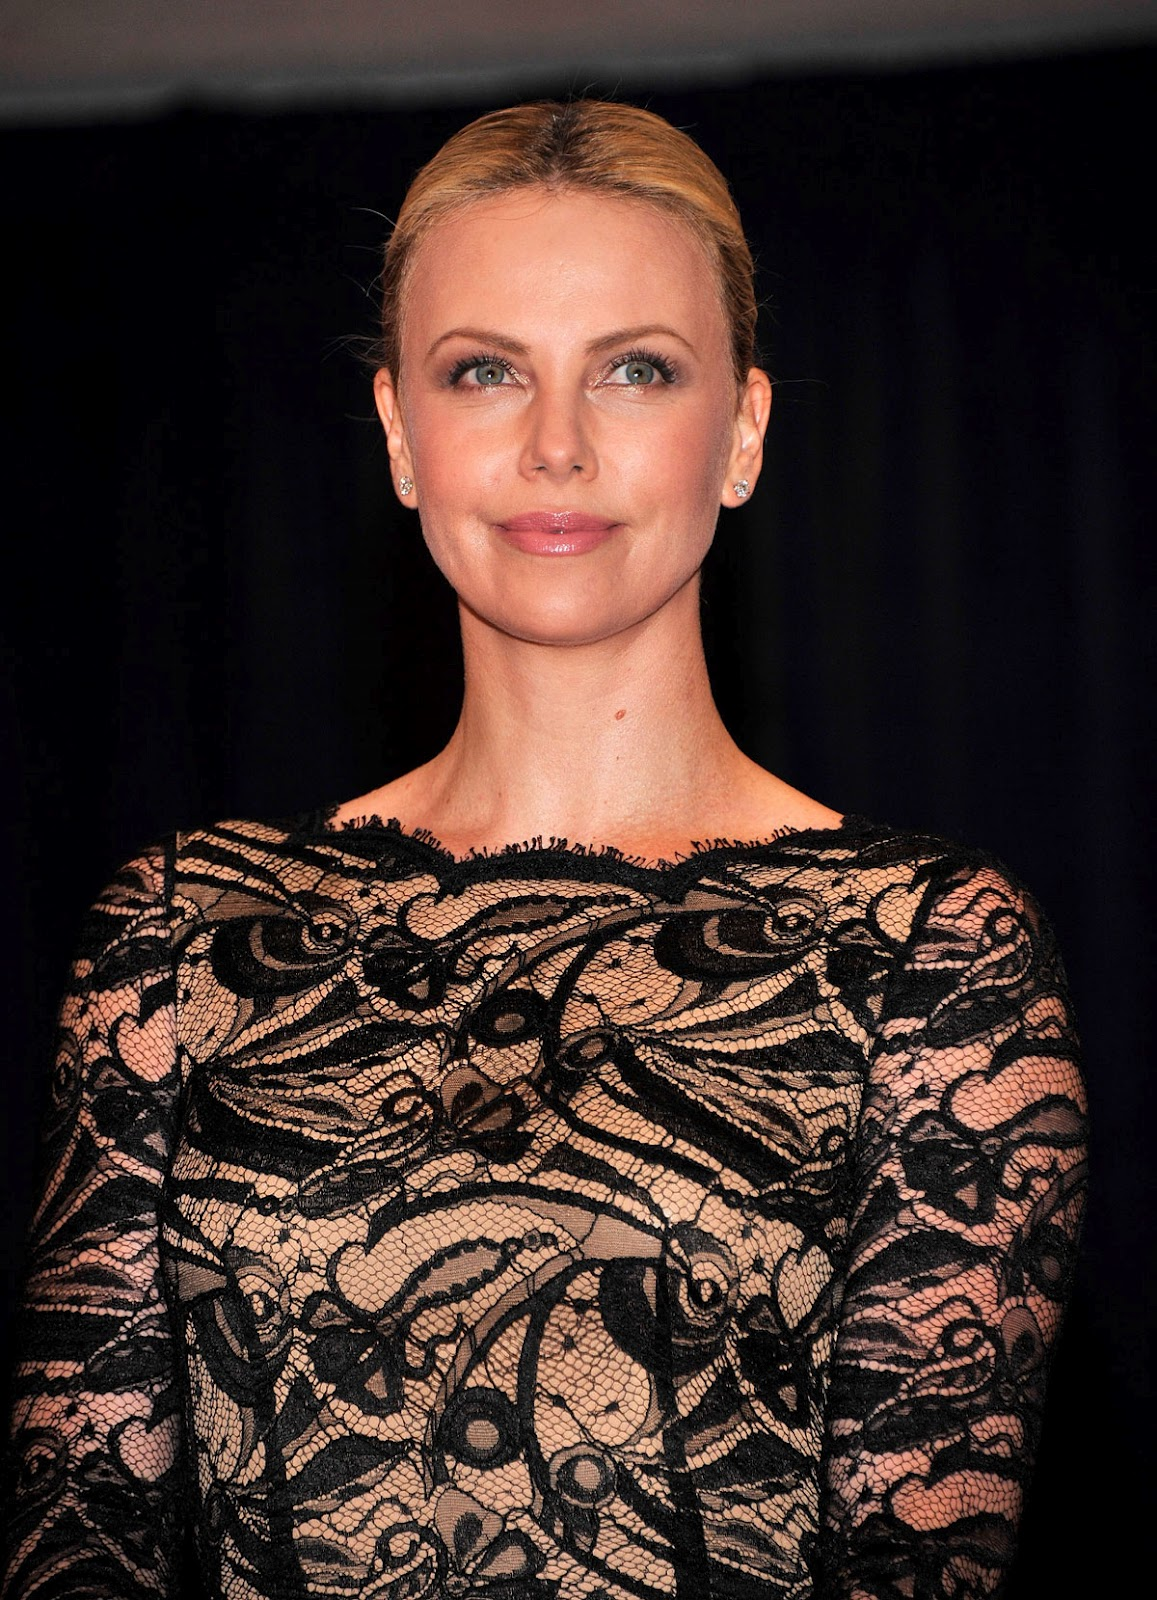 http://3.bp.blogspot.com/-_ClL-fCwDS8/T52i7wgaNxI/AAAAAAAADJc/qA16OLfDikA/s1600/CHARLIZE-THERON-2012-white-house-correspondents-association-dinner-03.jpg